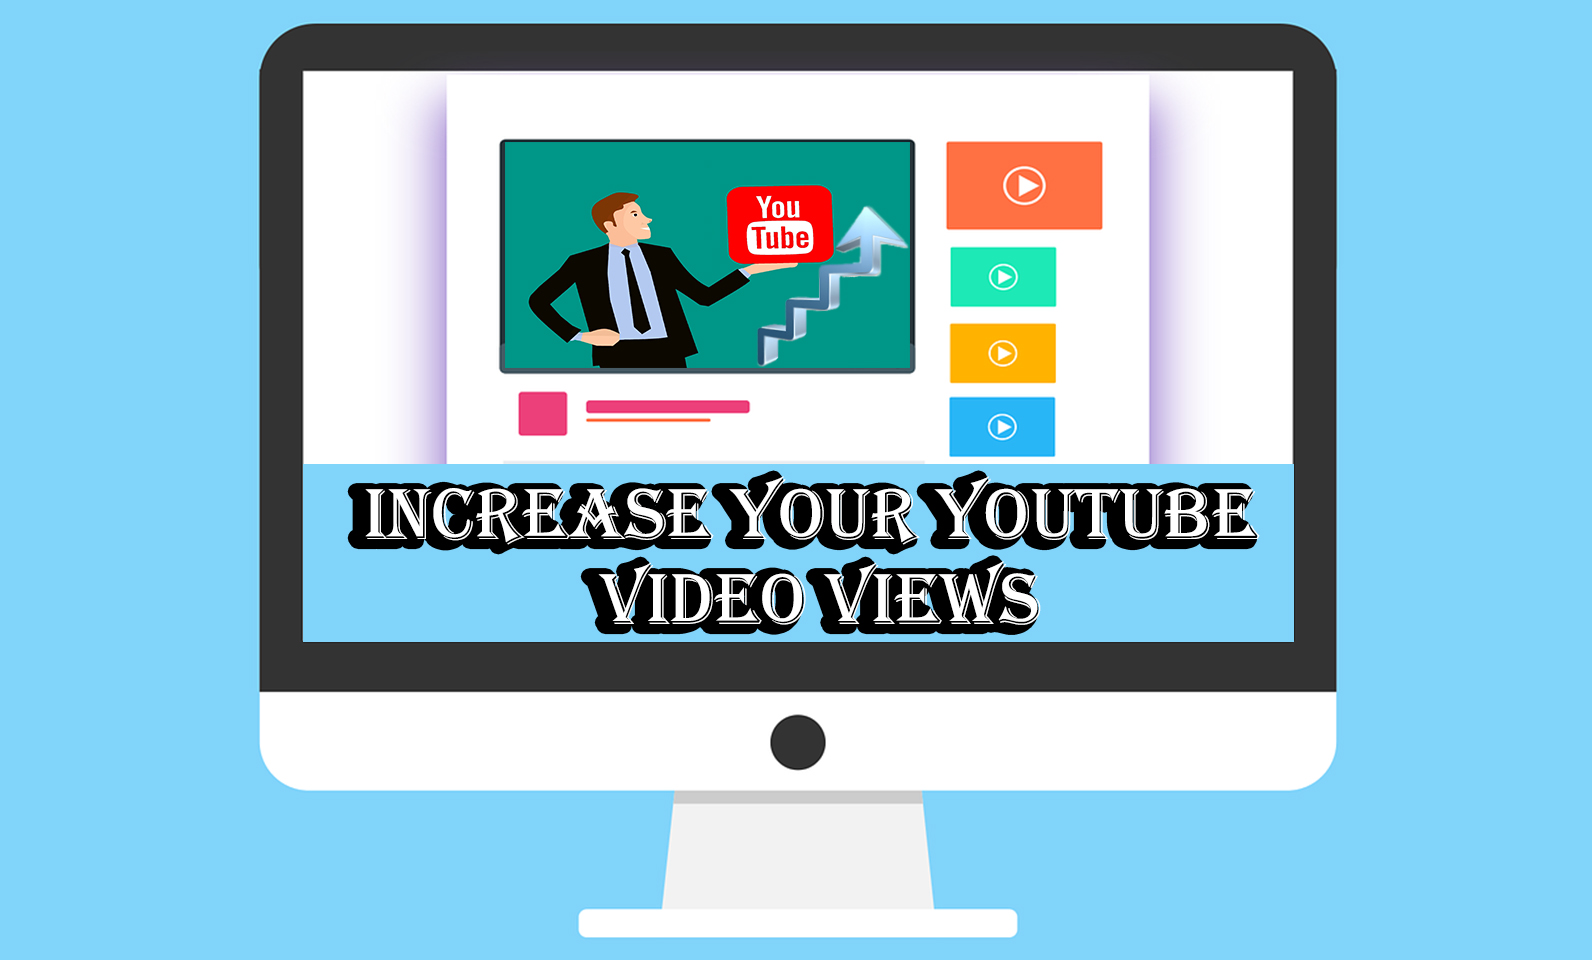 Increase Your YouTube Video Views